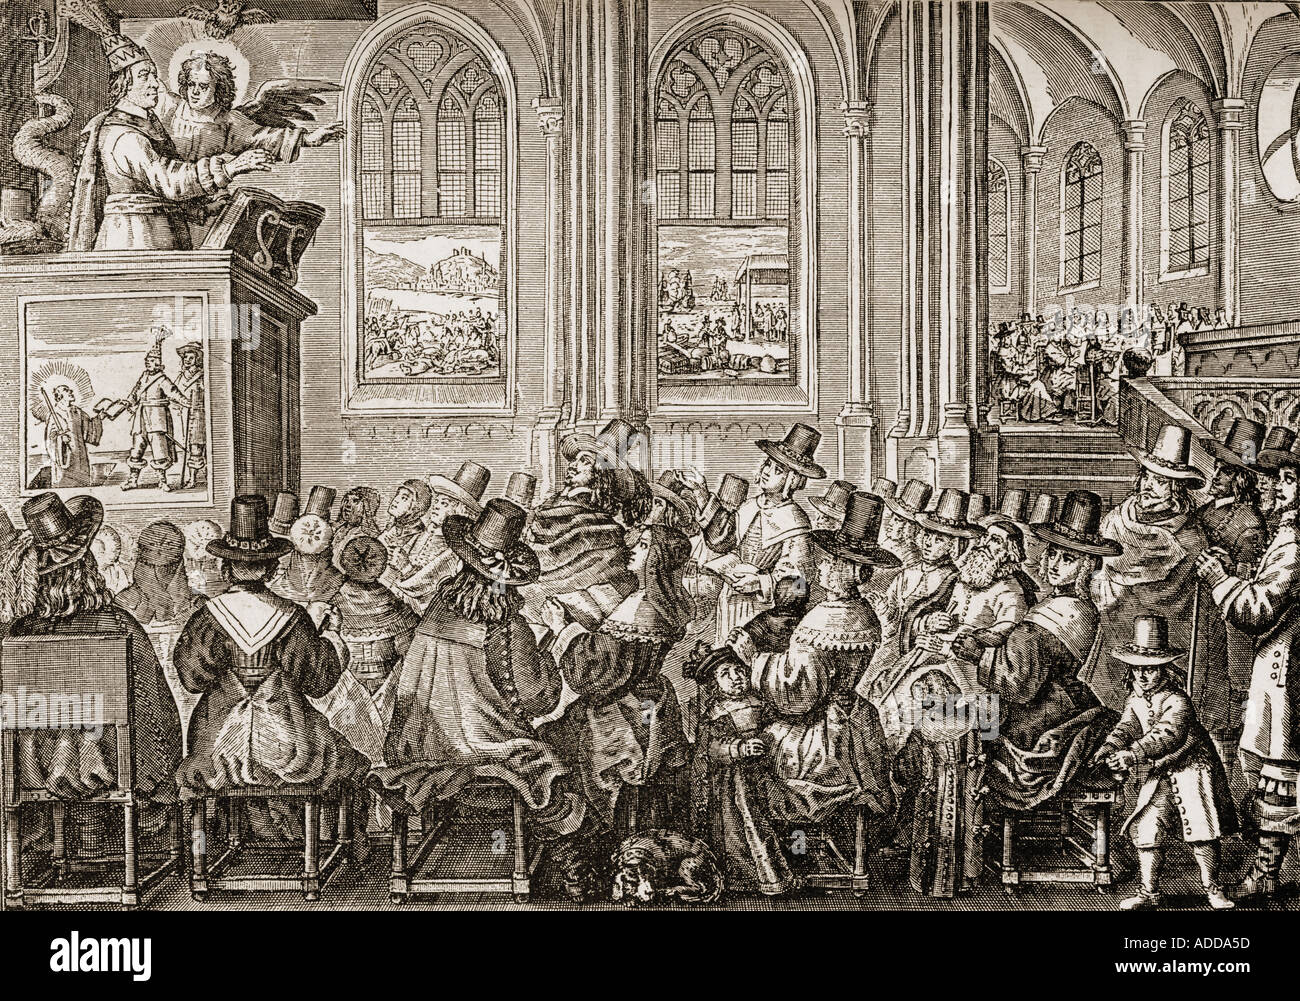 Oliver Cromwell Preaching To A Puritan Congregation Stock Photo Royalty Free Image